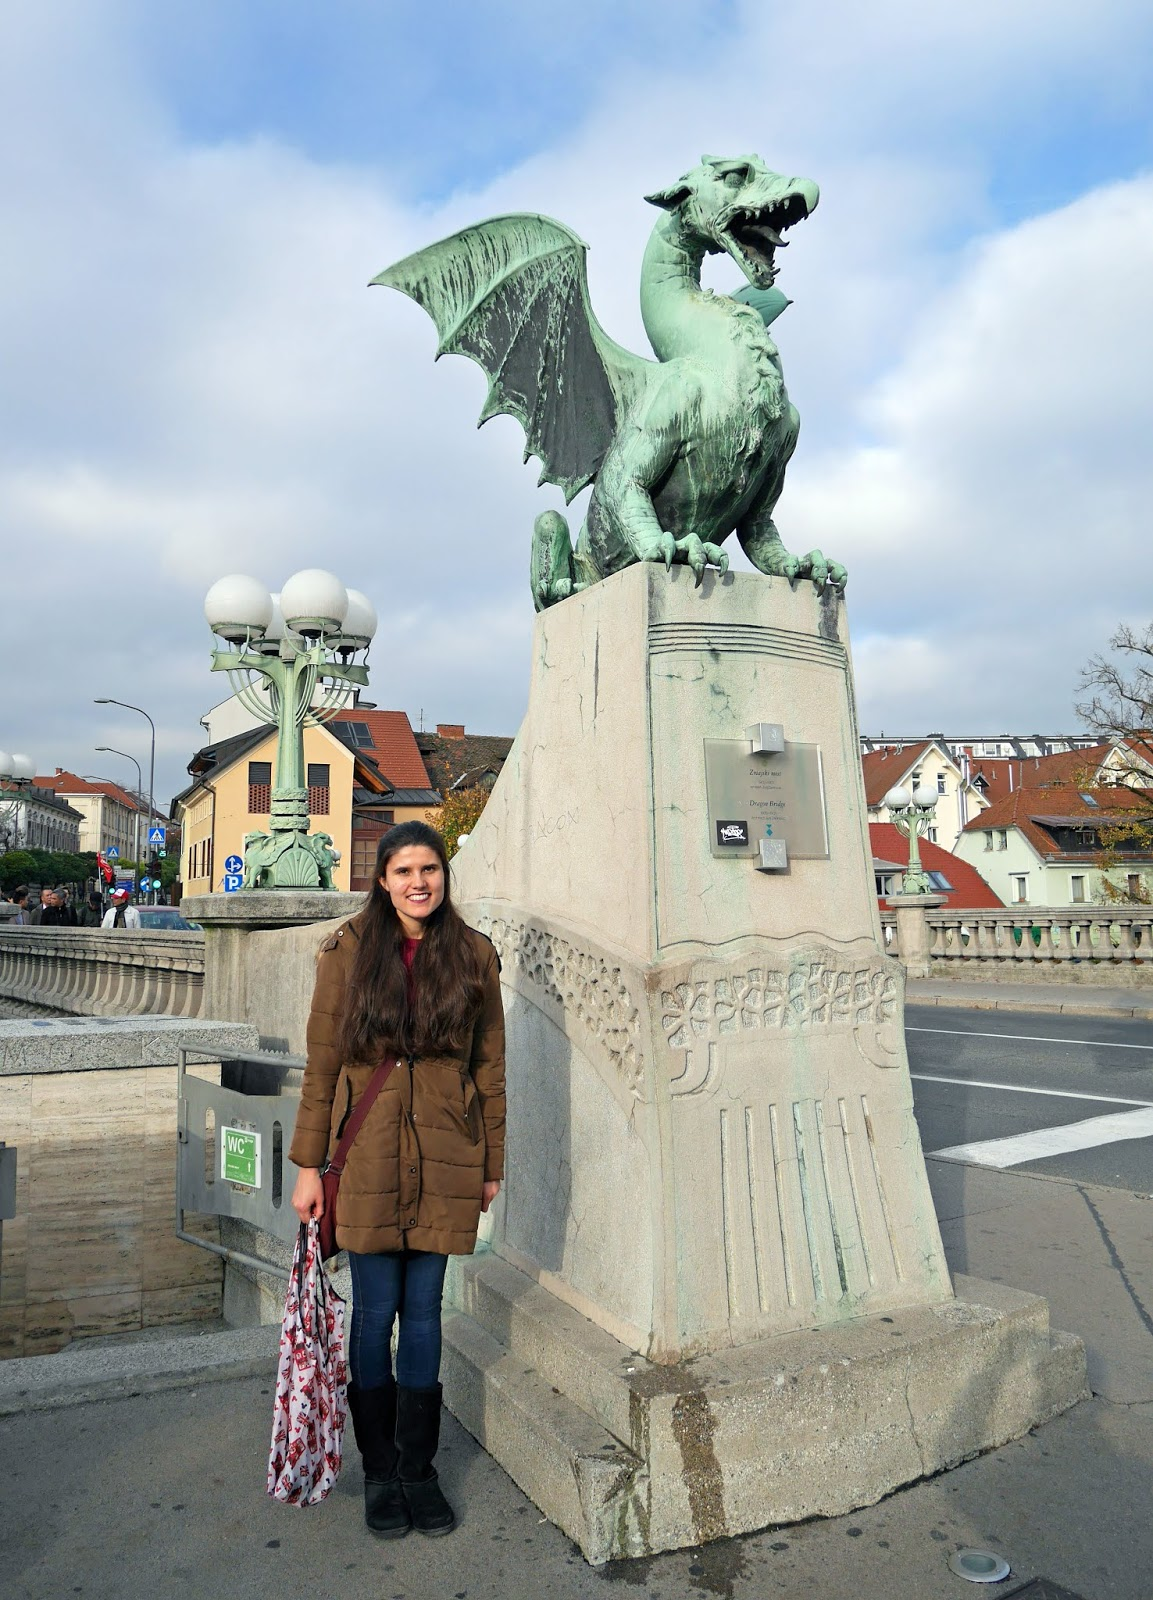 Kat Last standing by the Dragon Bridge in Ljubljana, Slovenia